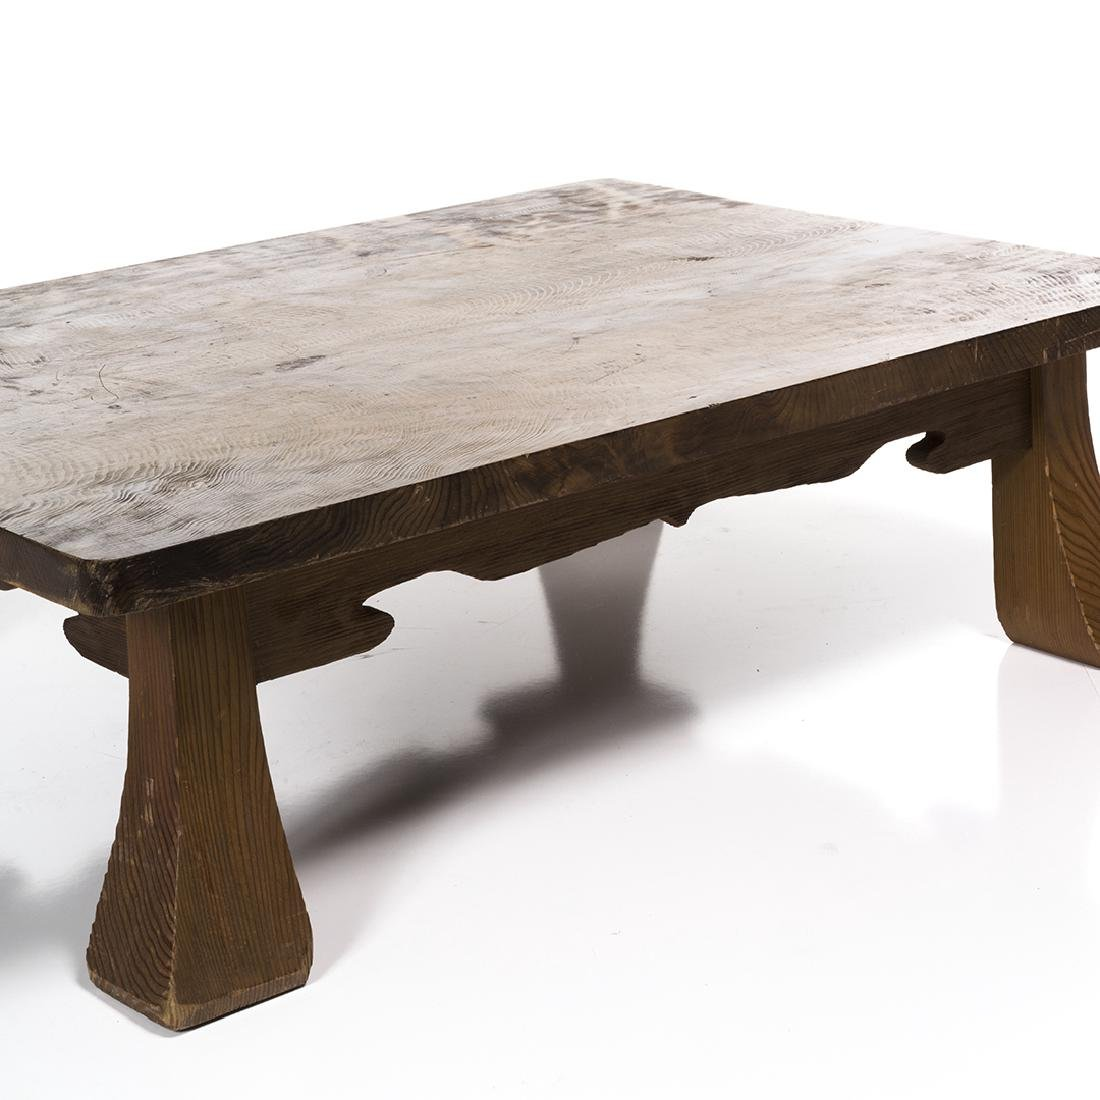 Low Craftsman Style Table - 4